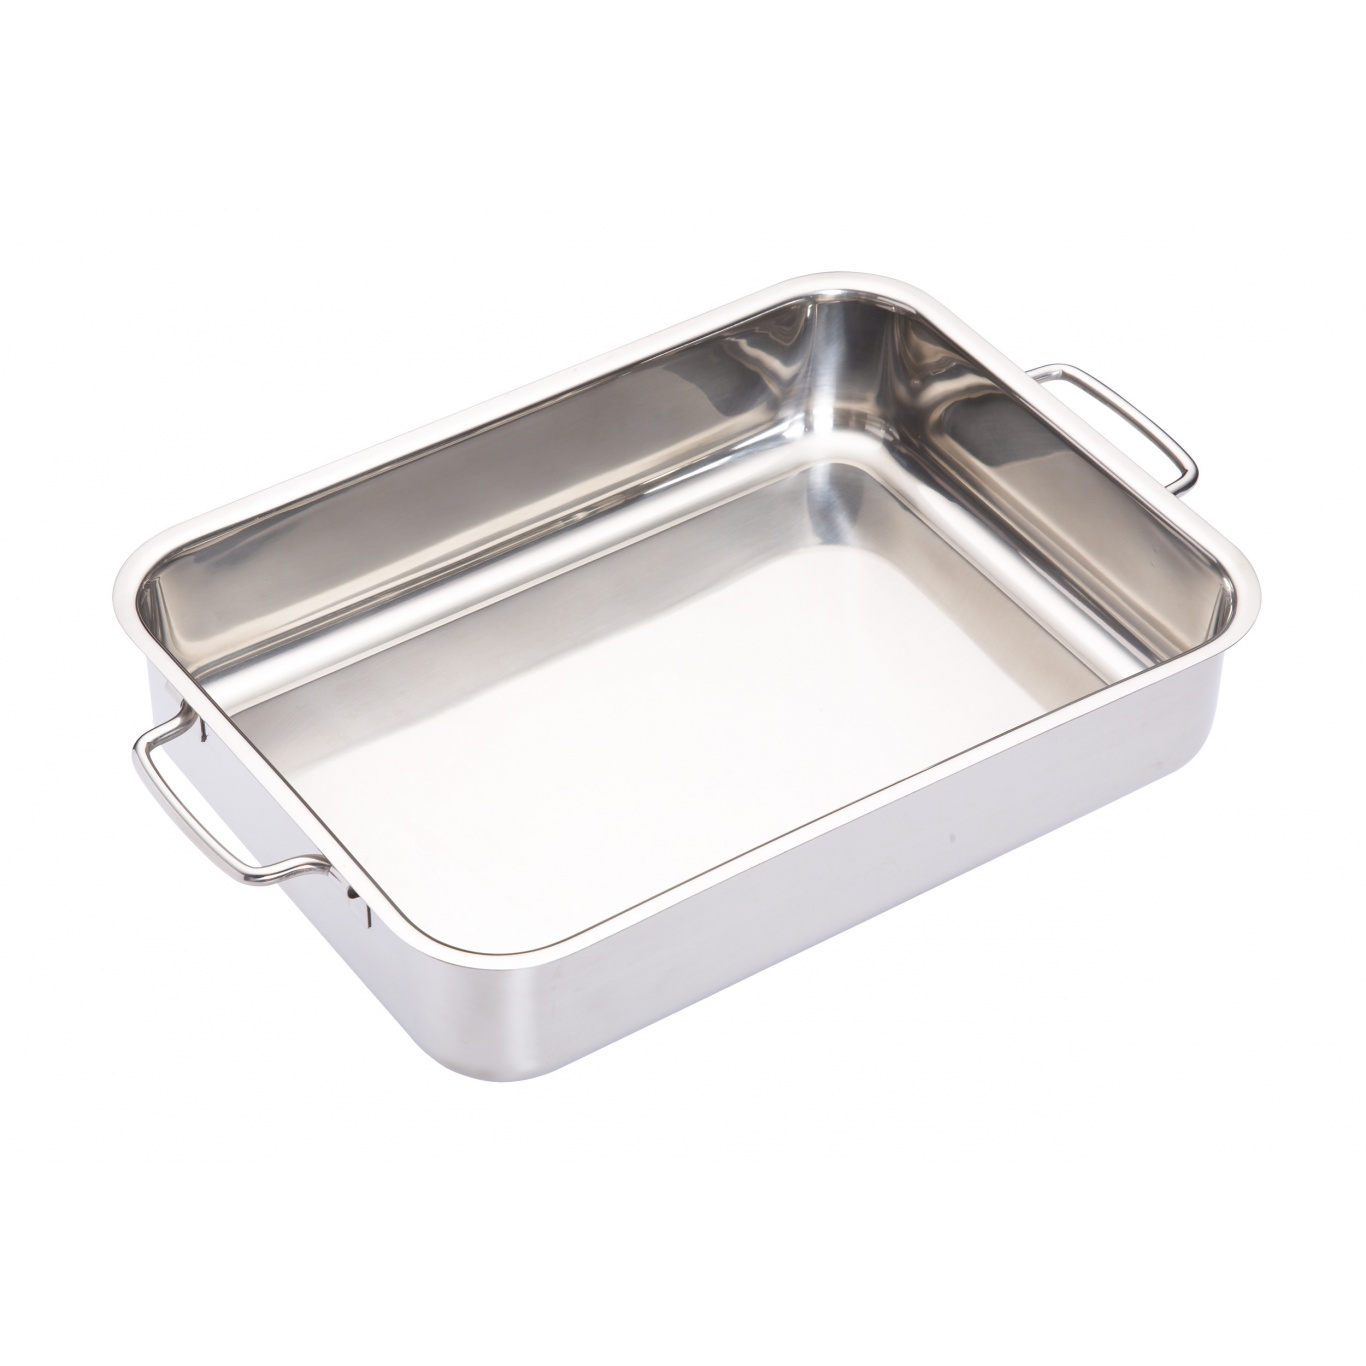 Image of Stainless Steel Heavy Duty Roasting Pan 32cm x 23cm x 6.5cm